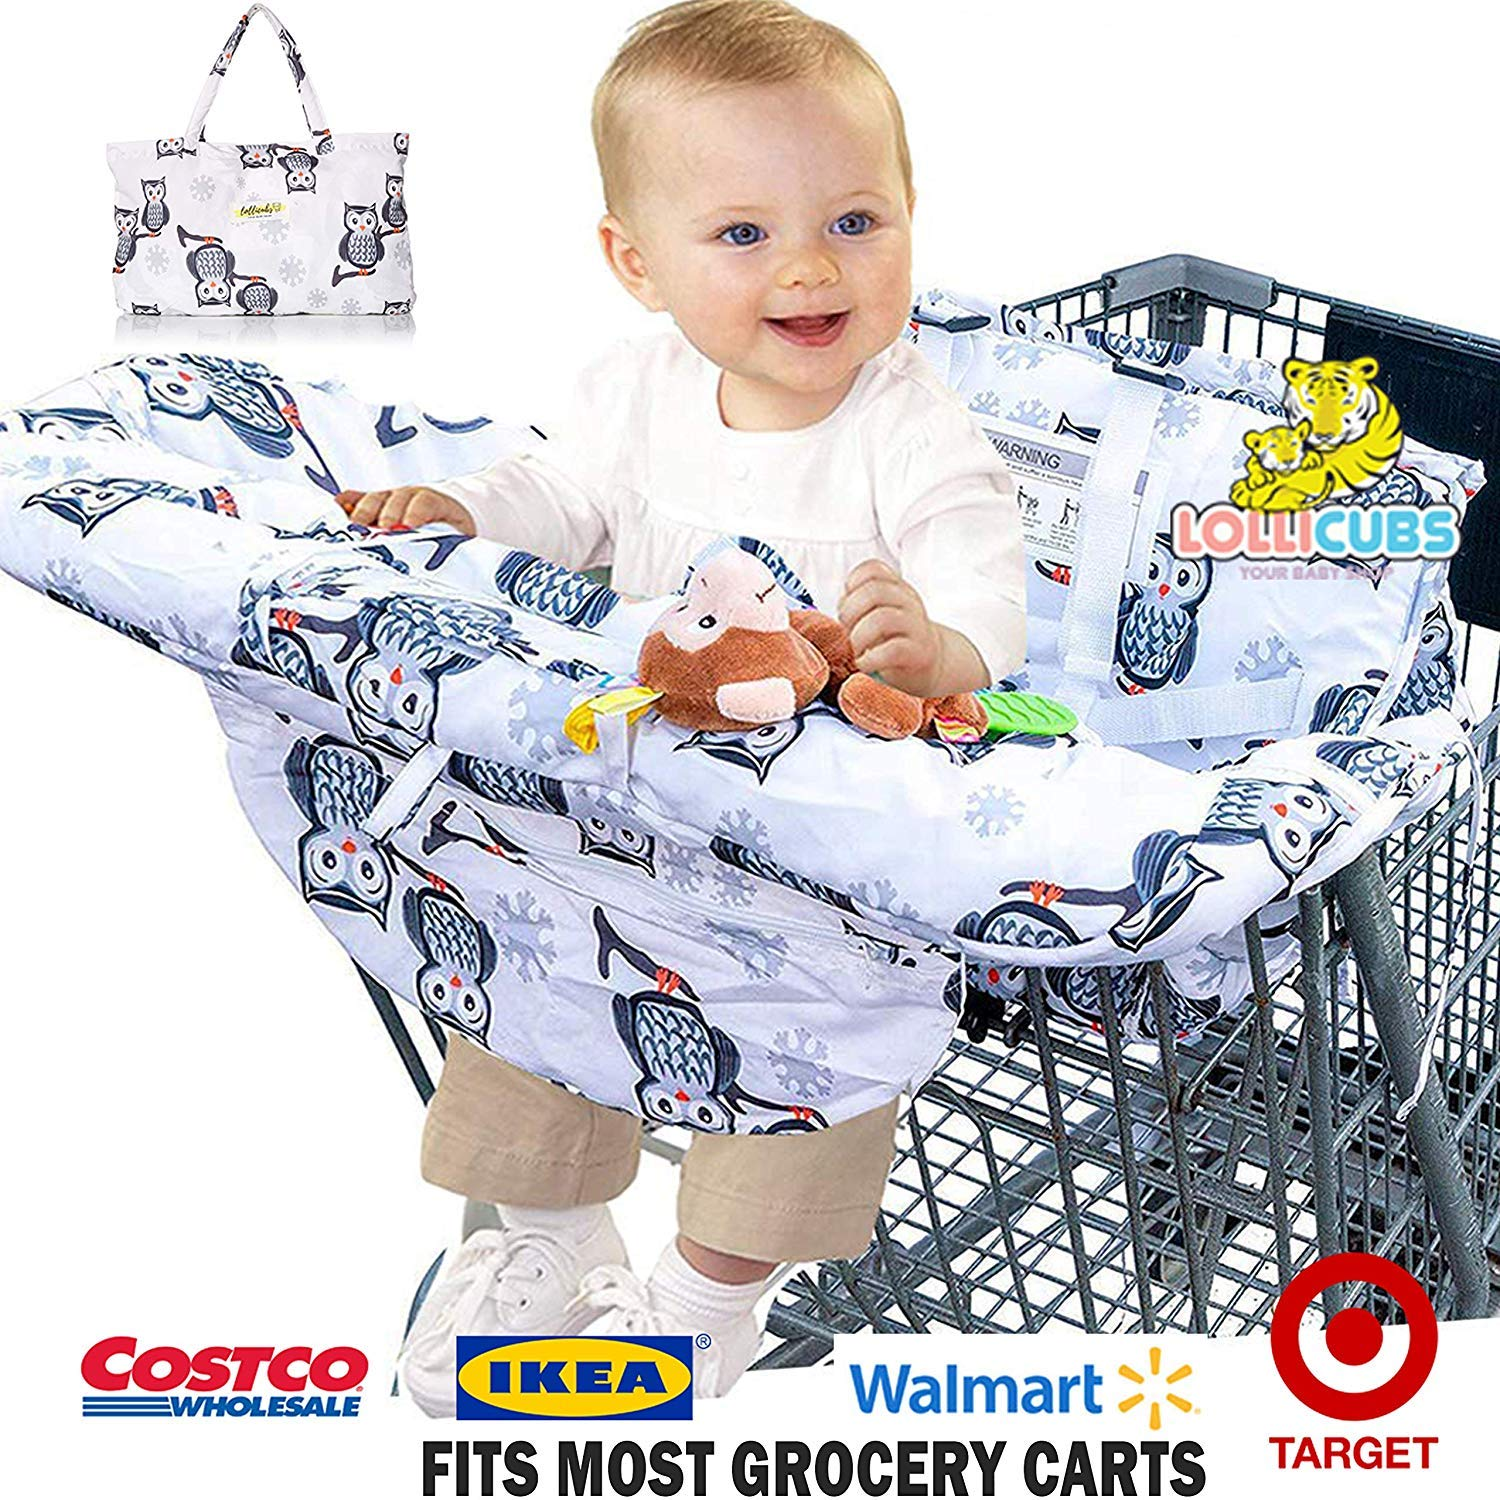 2 in 1 Deluxe Size Shopping Cart Cover and High Chair Cover | Premium-Quality Cushioned Seats with Pockets for Highchairs and Grocery Carts